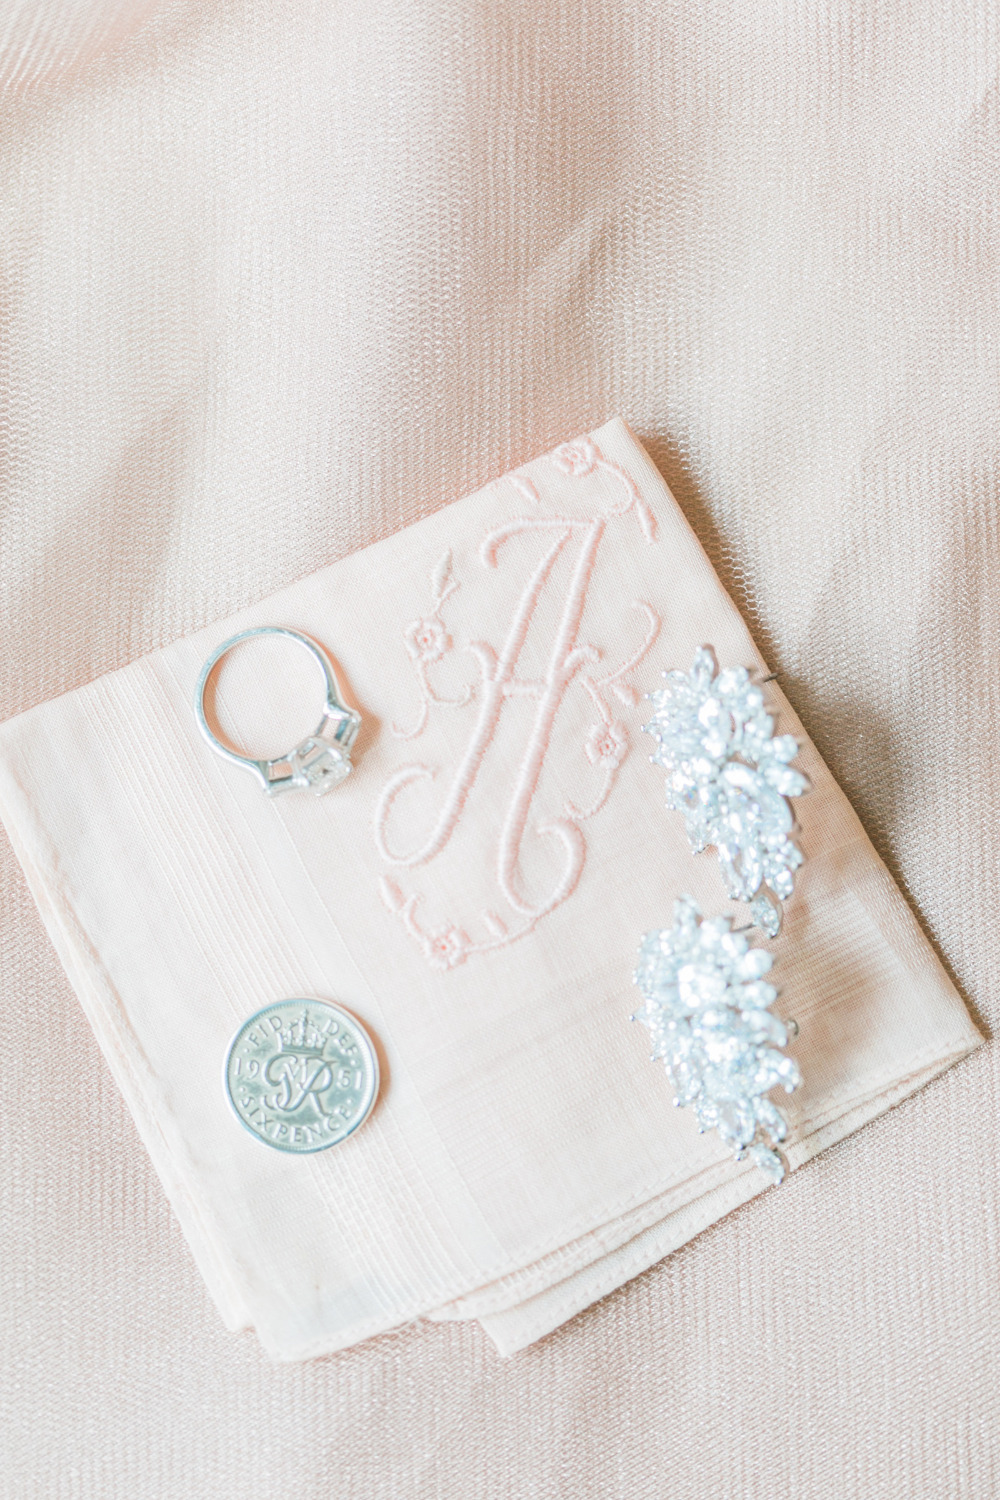 wedding handkercheif with monogram